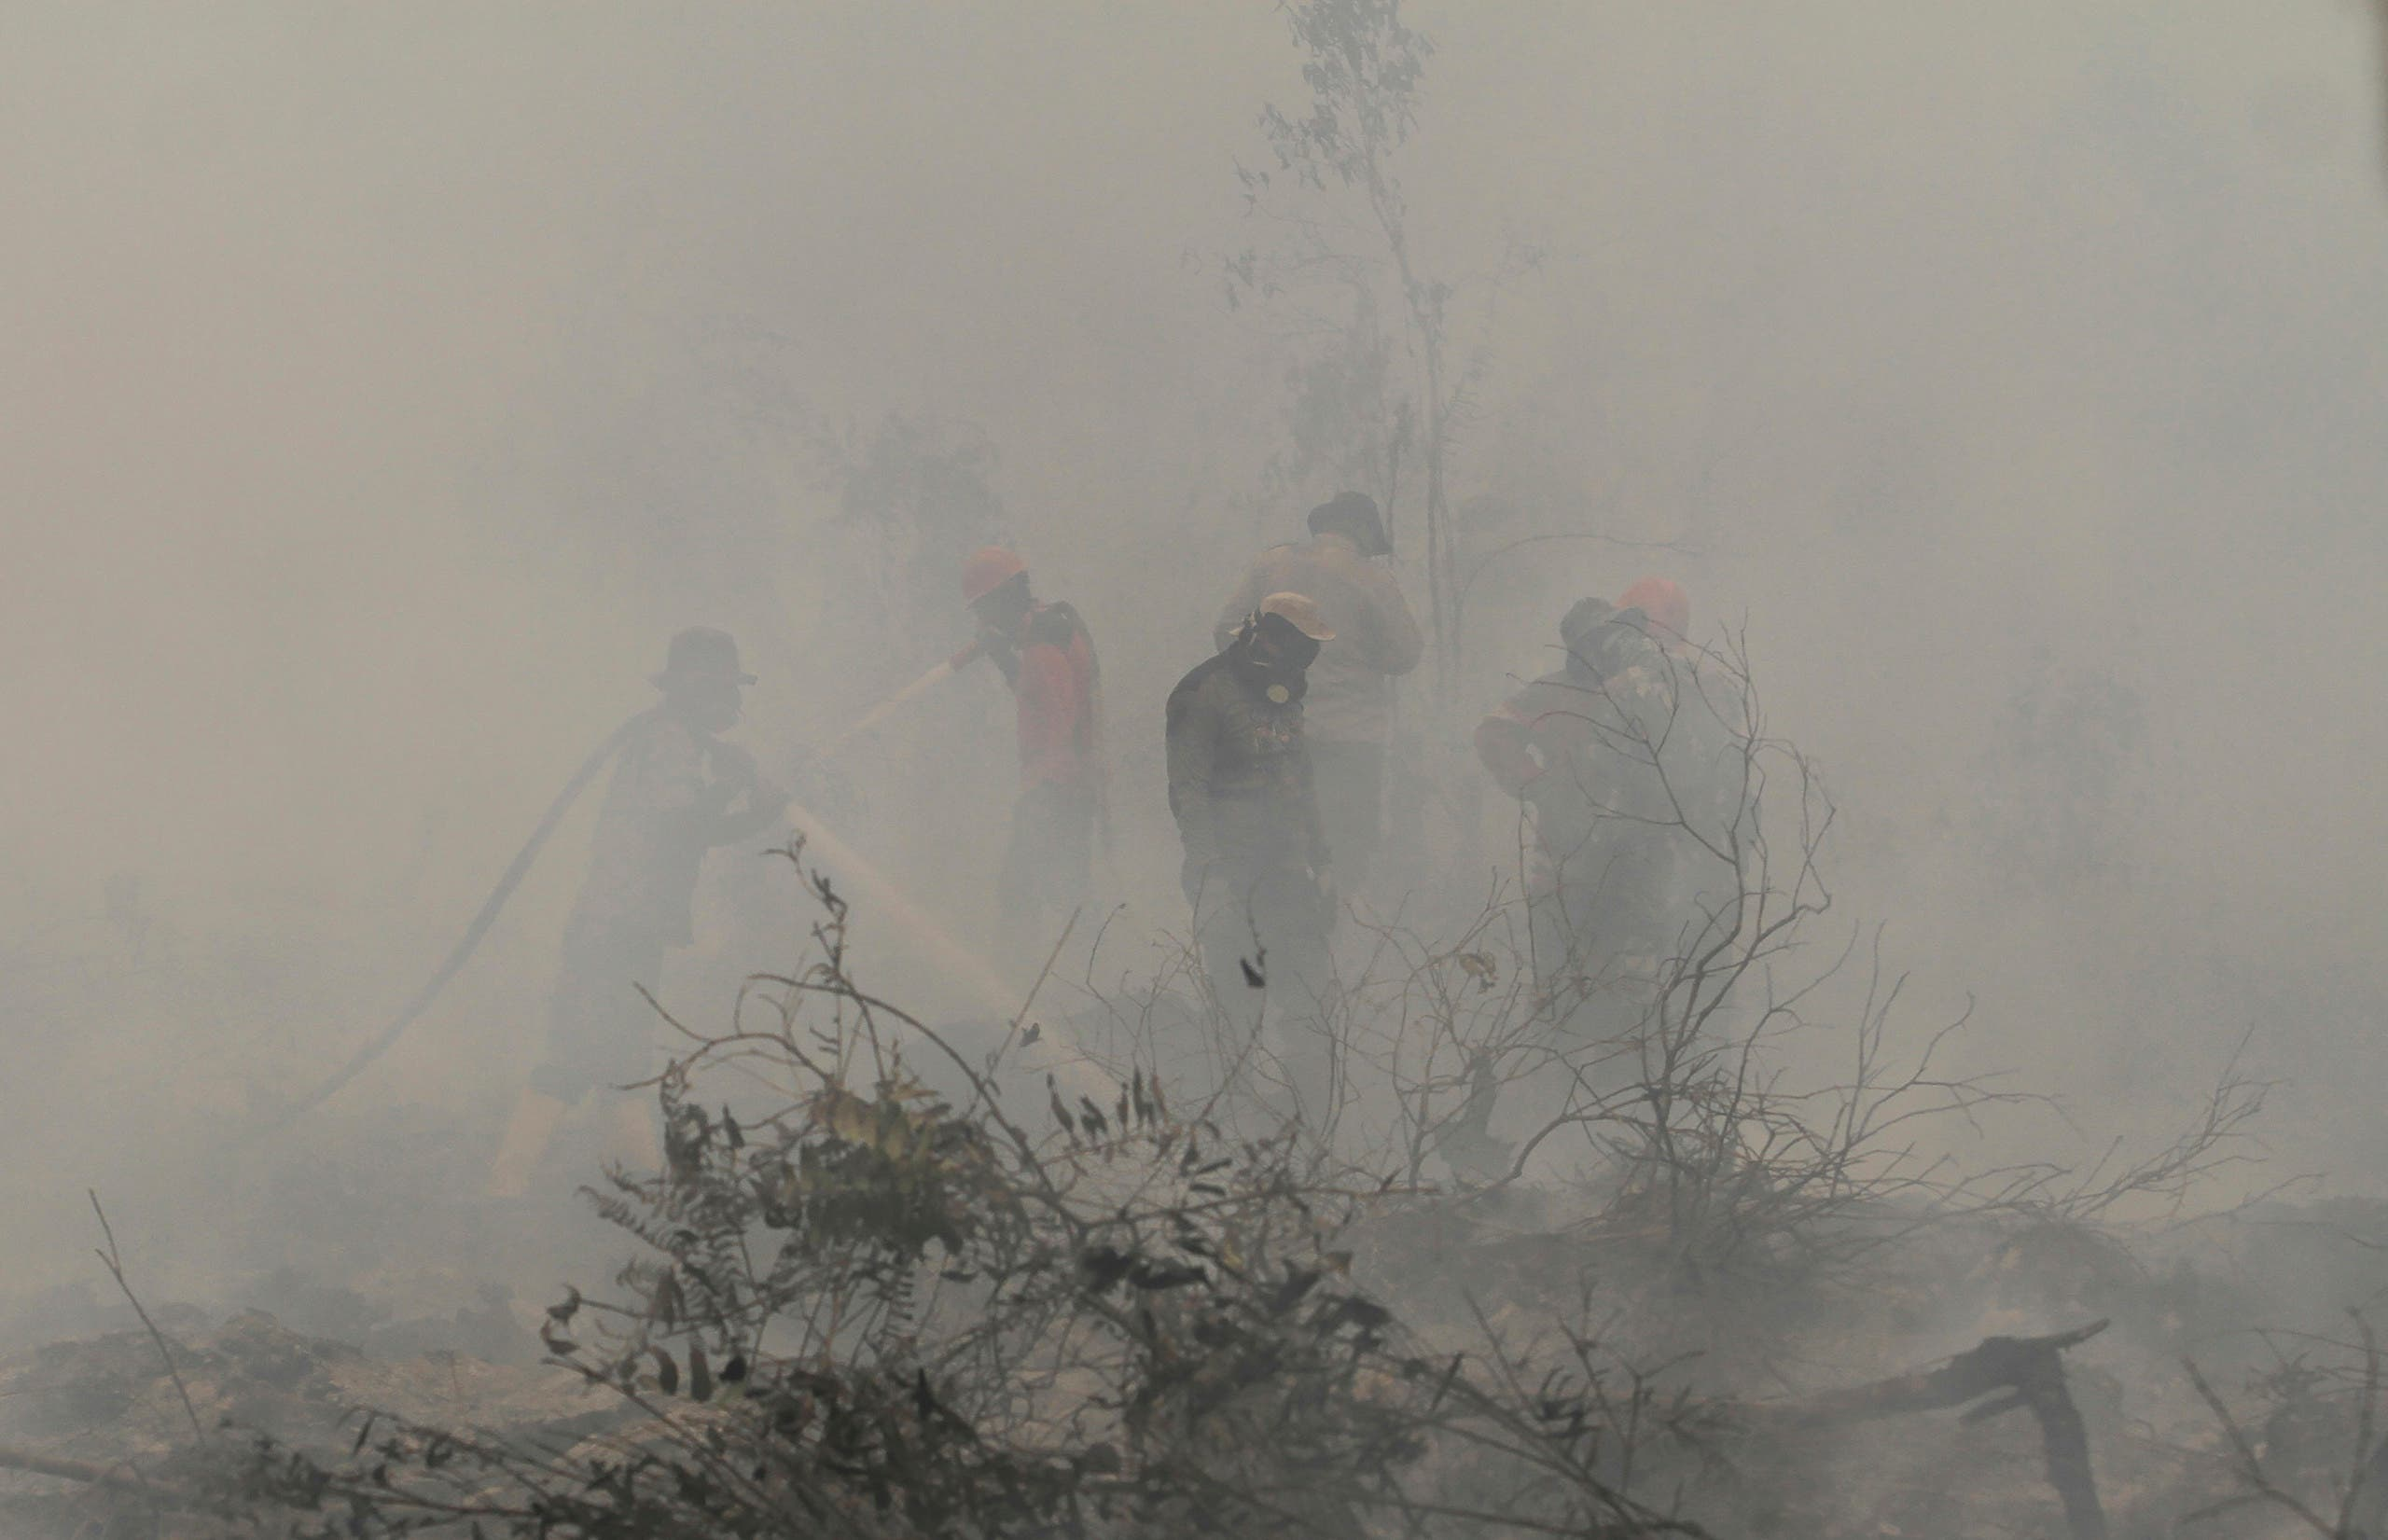 Firefighters spray water to extinguish a forest fire in Kampar, Riau province, Indonesia, Monday, Sept. 23, 2019. (AP)